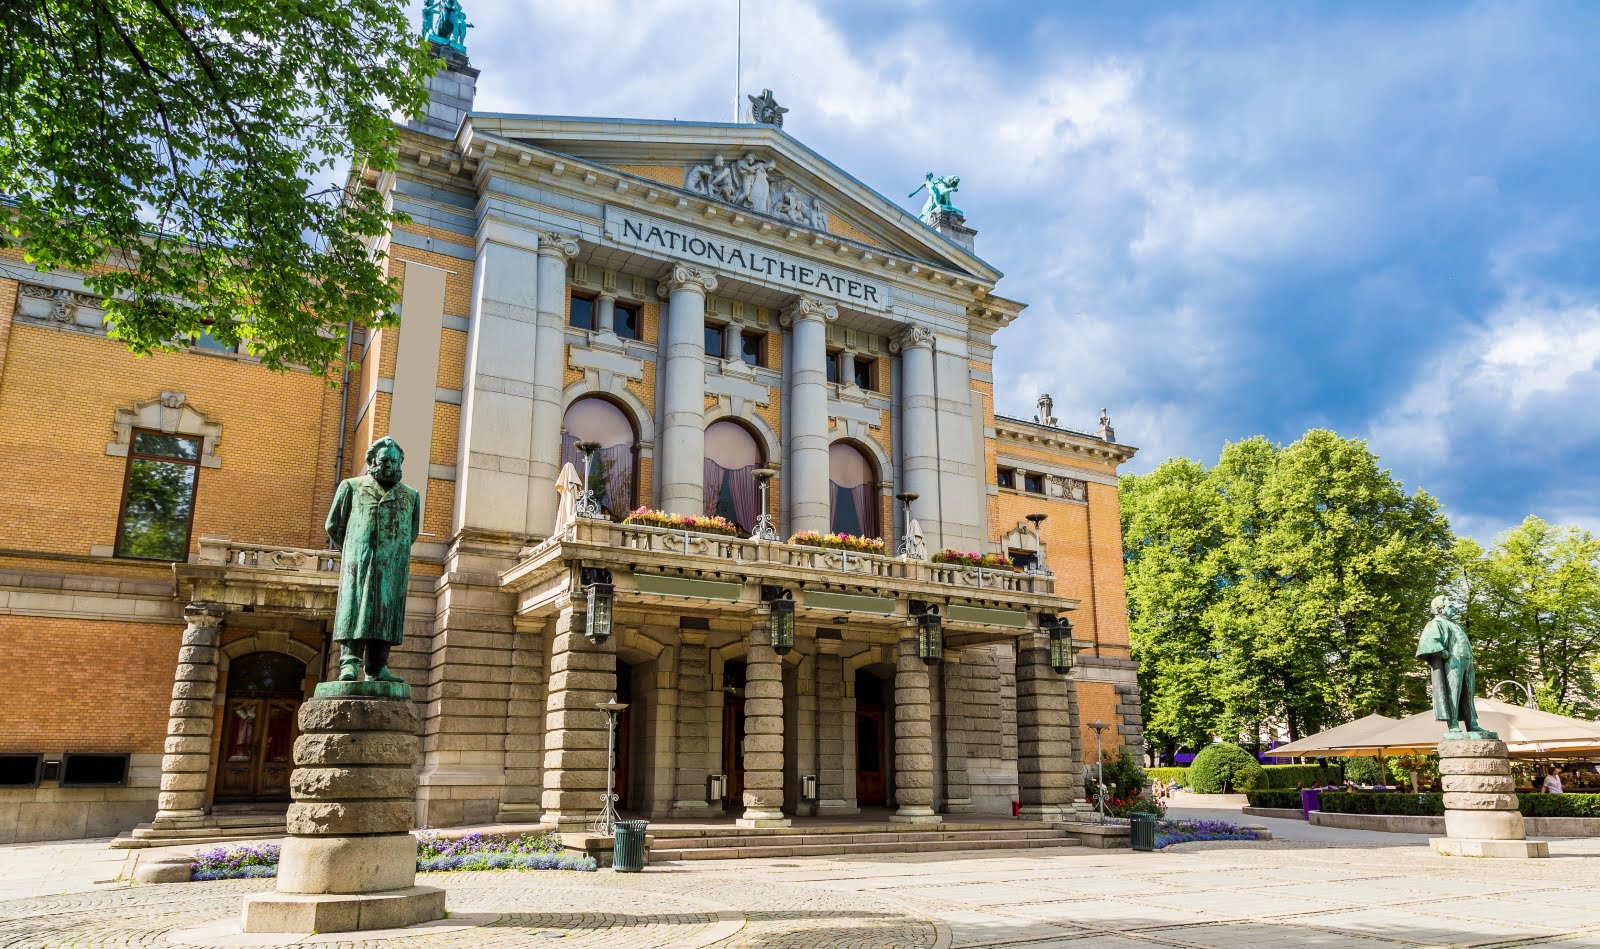 Exterior of Oslo's National Theatre in Norway